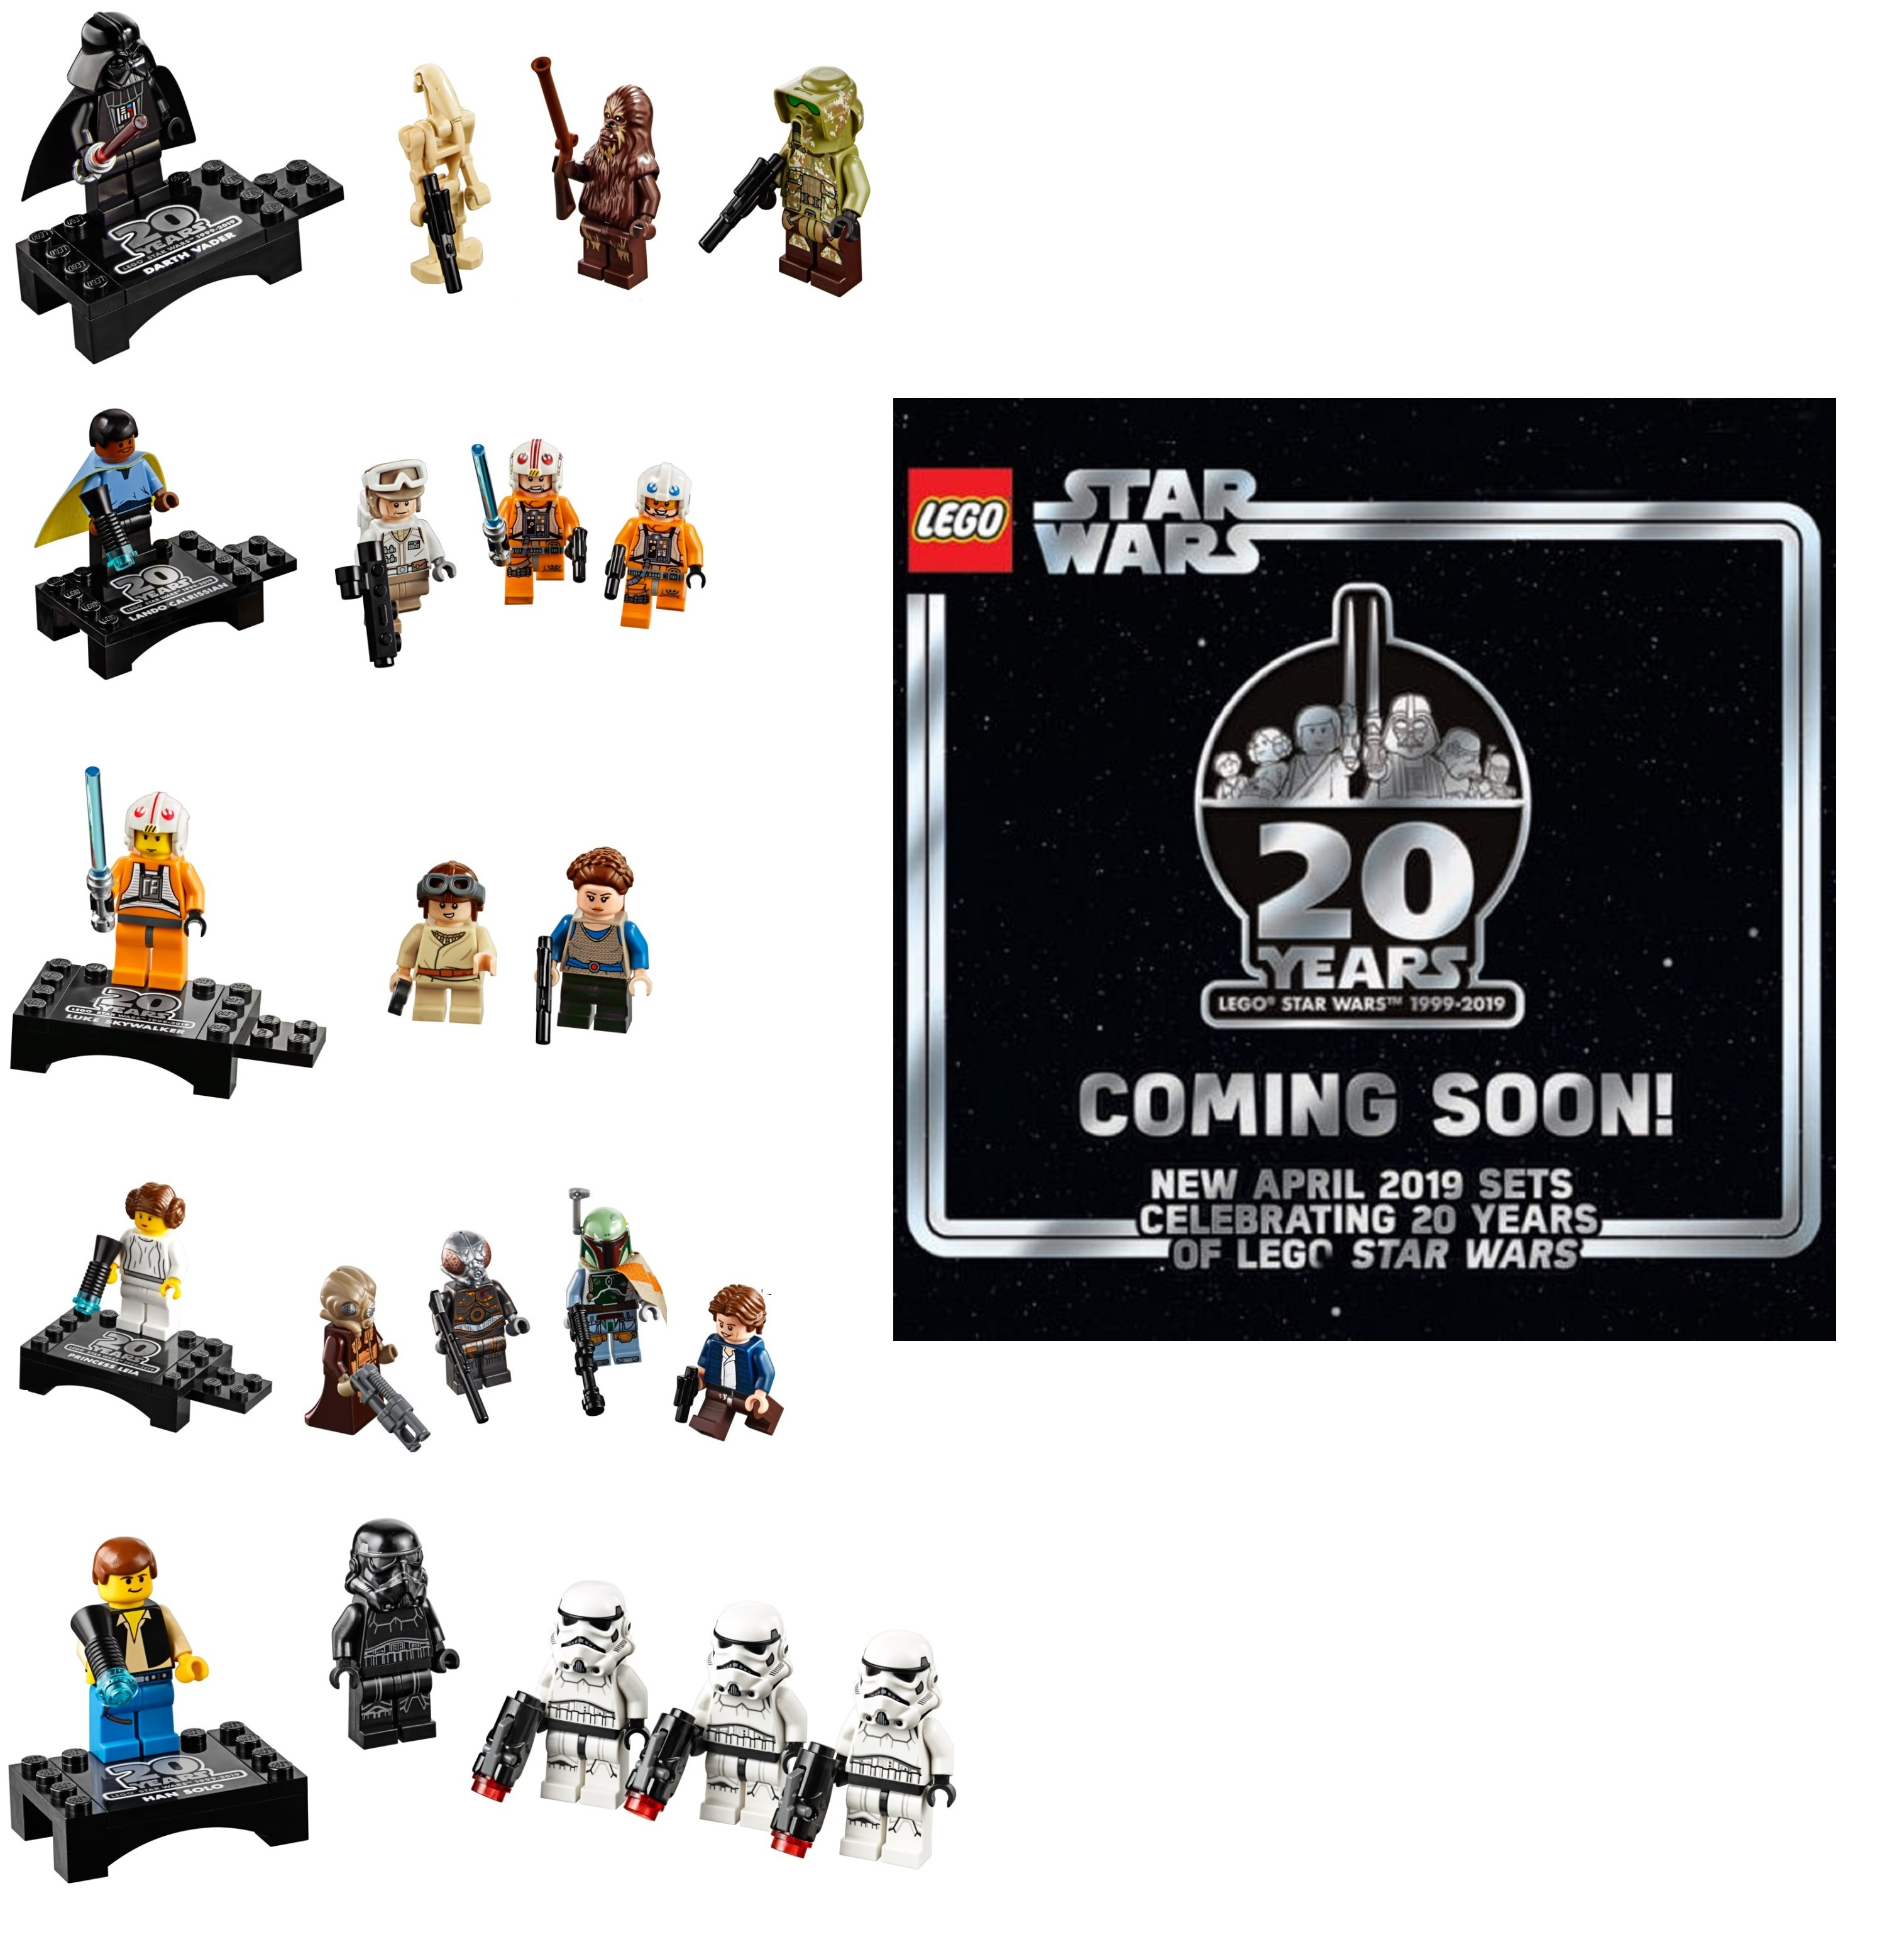 Lego Star Wars 20th Anniversary Commemorative Minifigures Announced